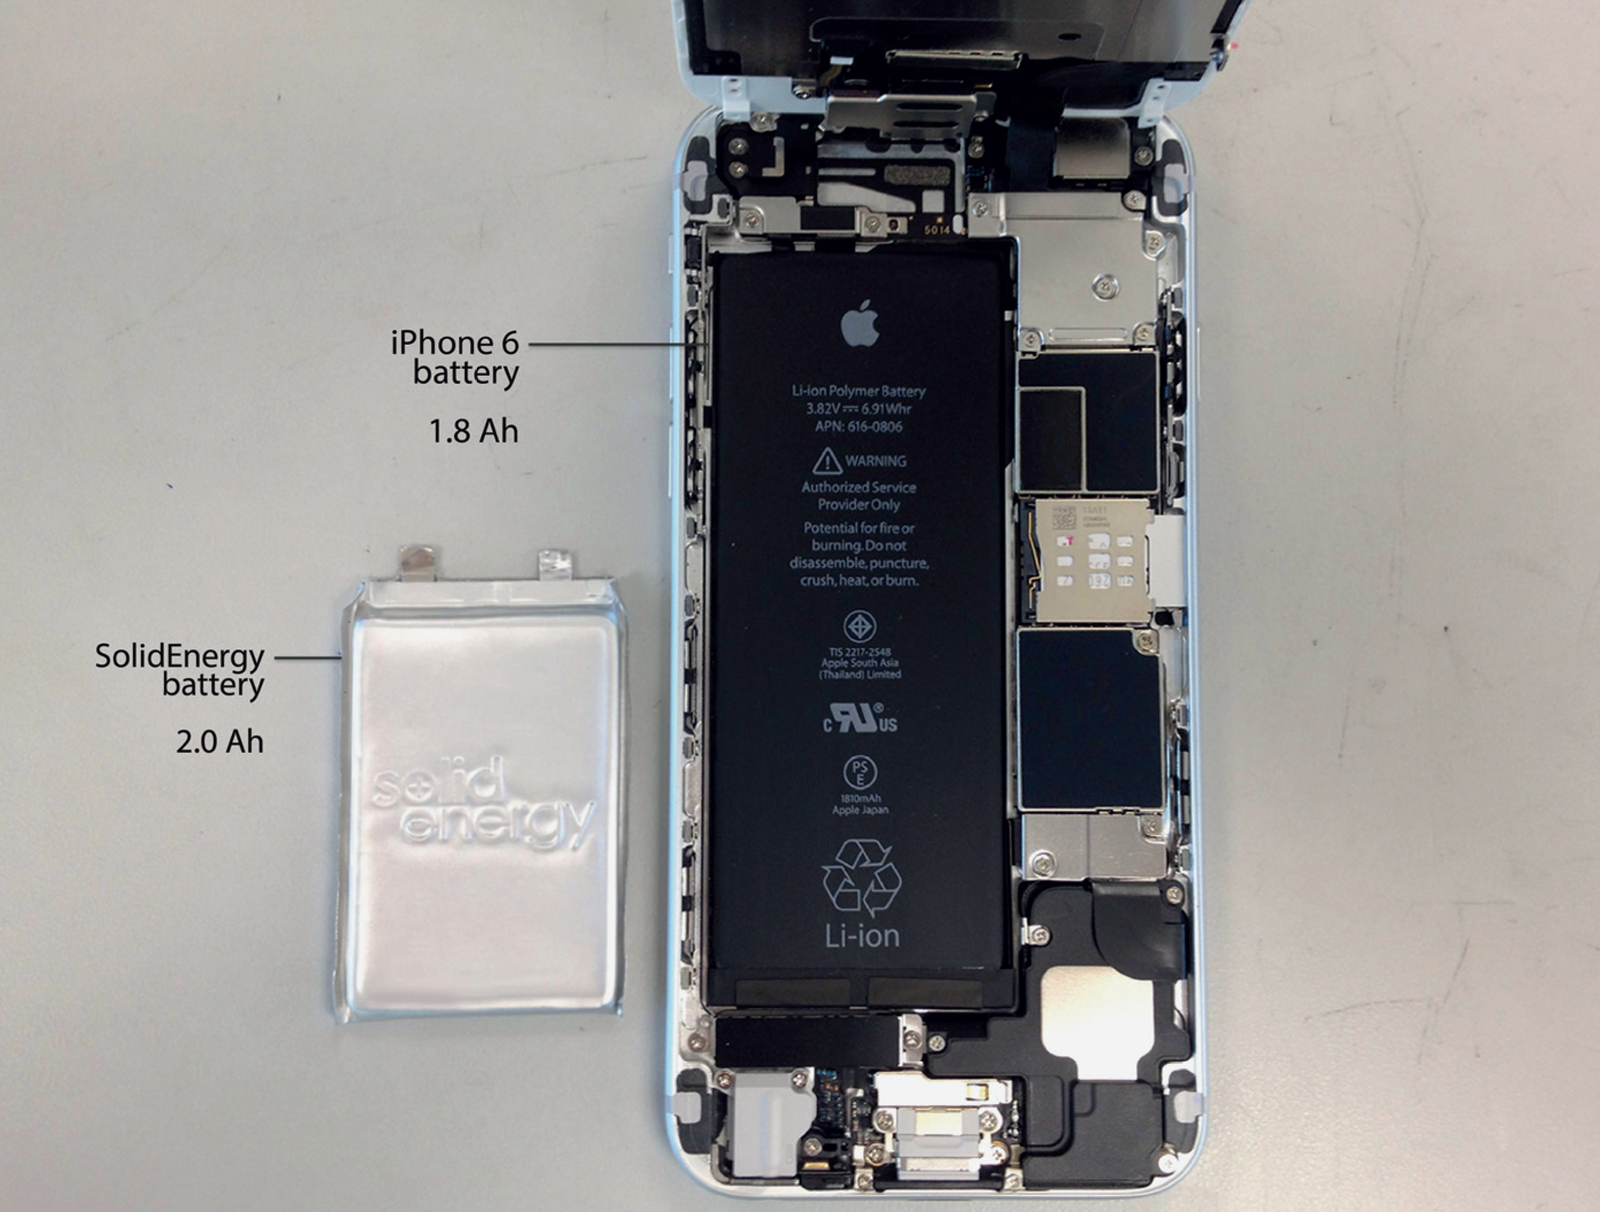 Last fall SolidEnergy showed a prototype that's half the size of an iPhone 6 battery but offers more battery life per charge.